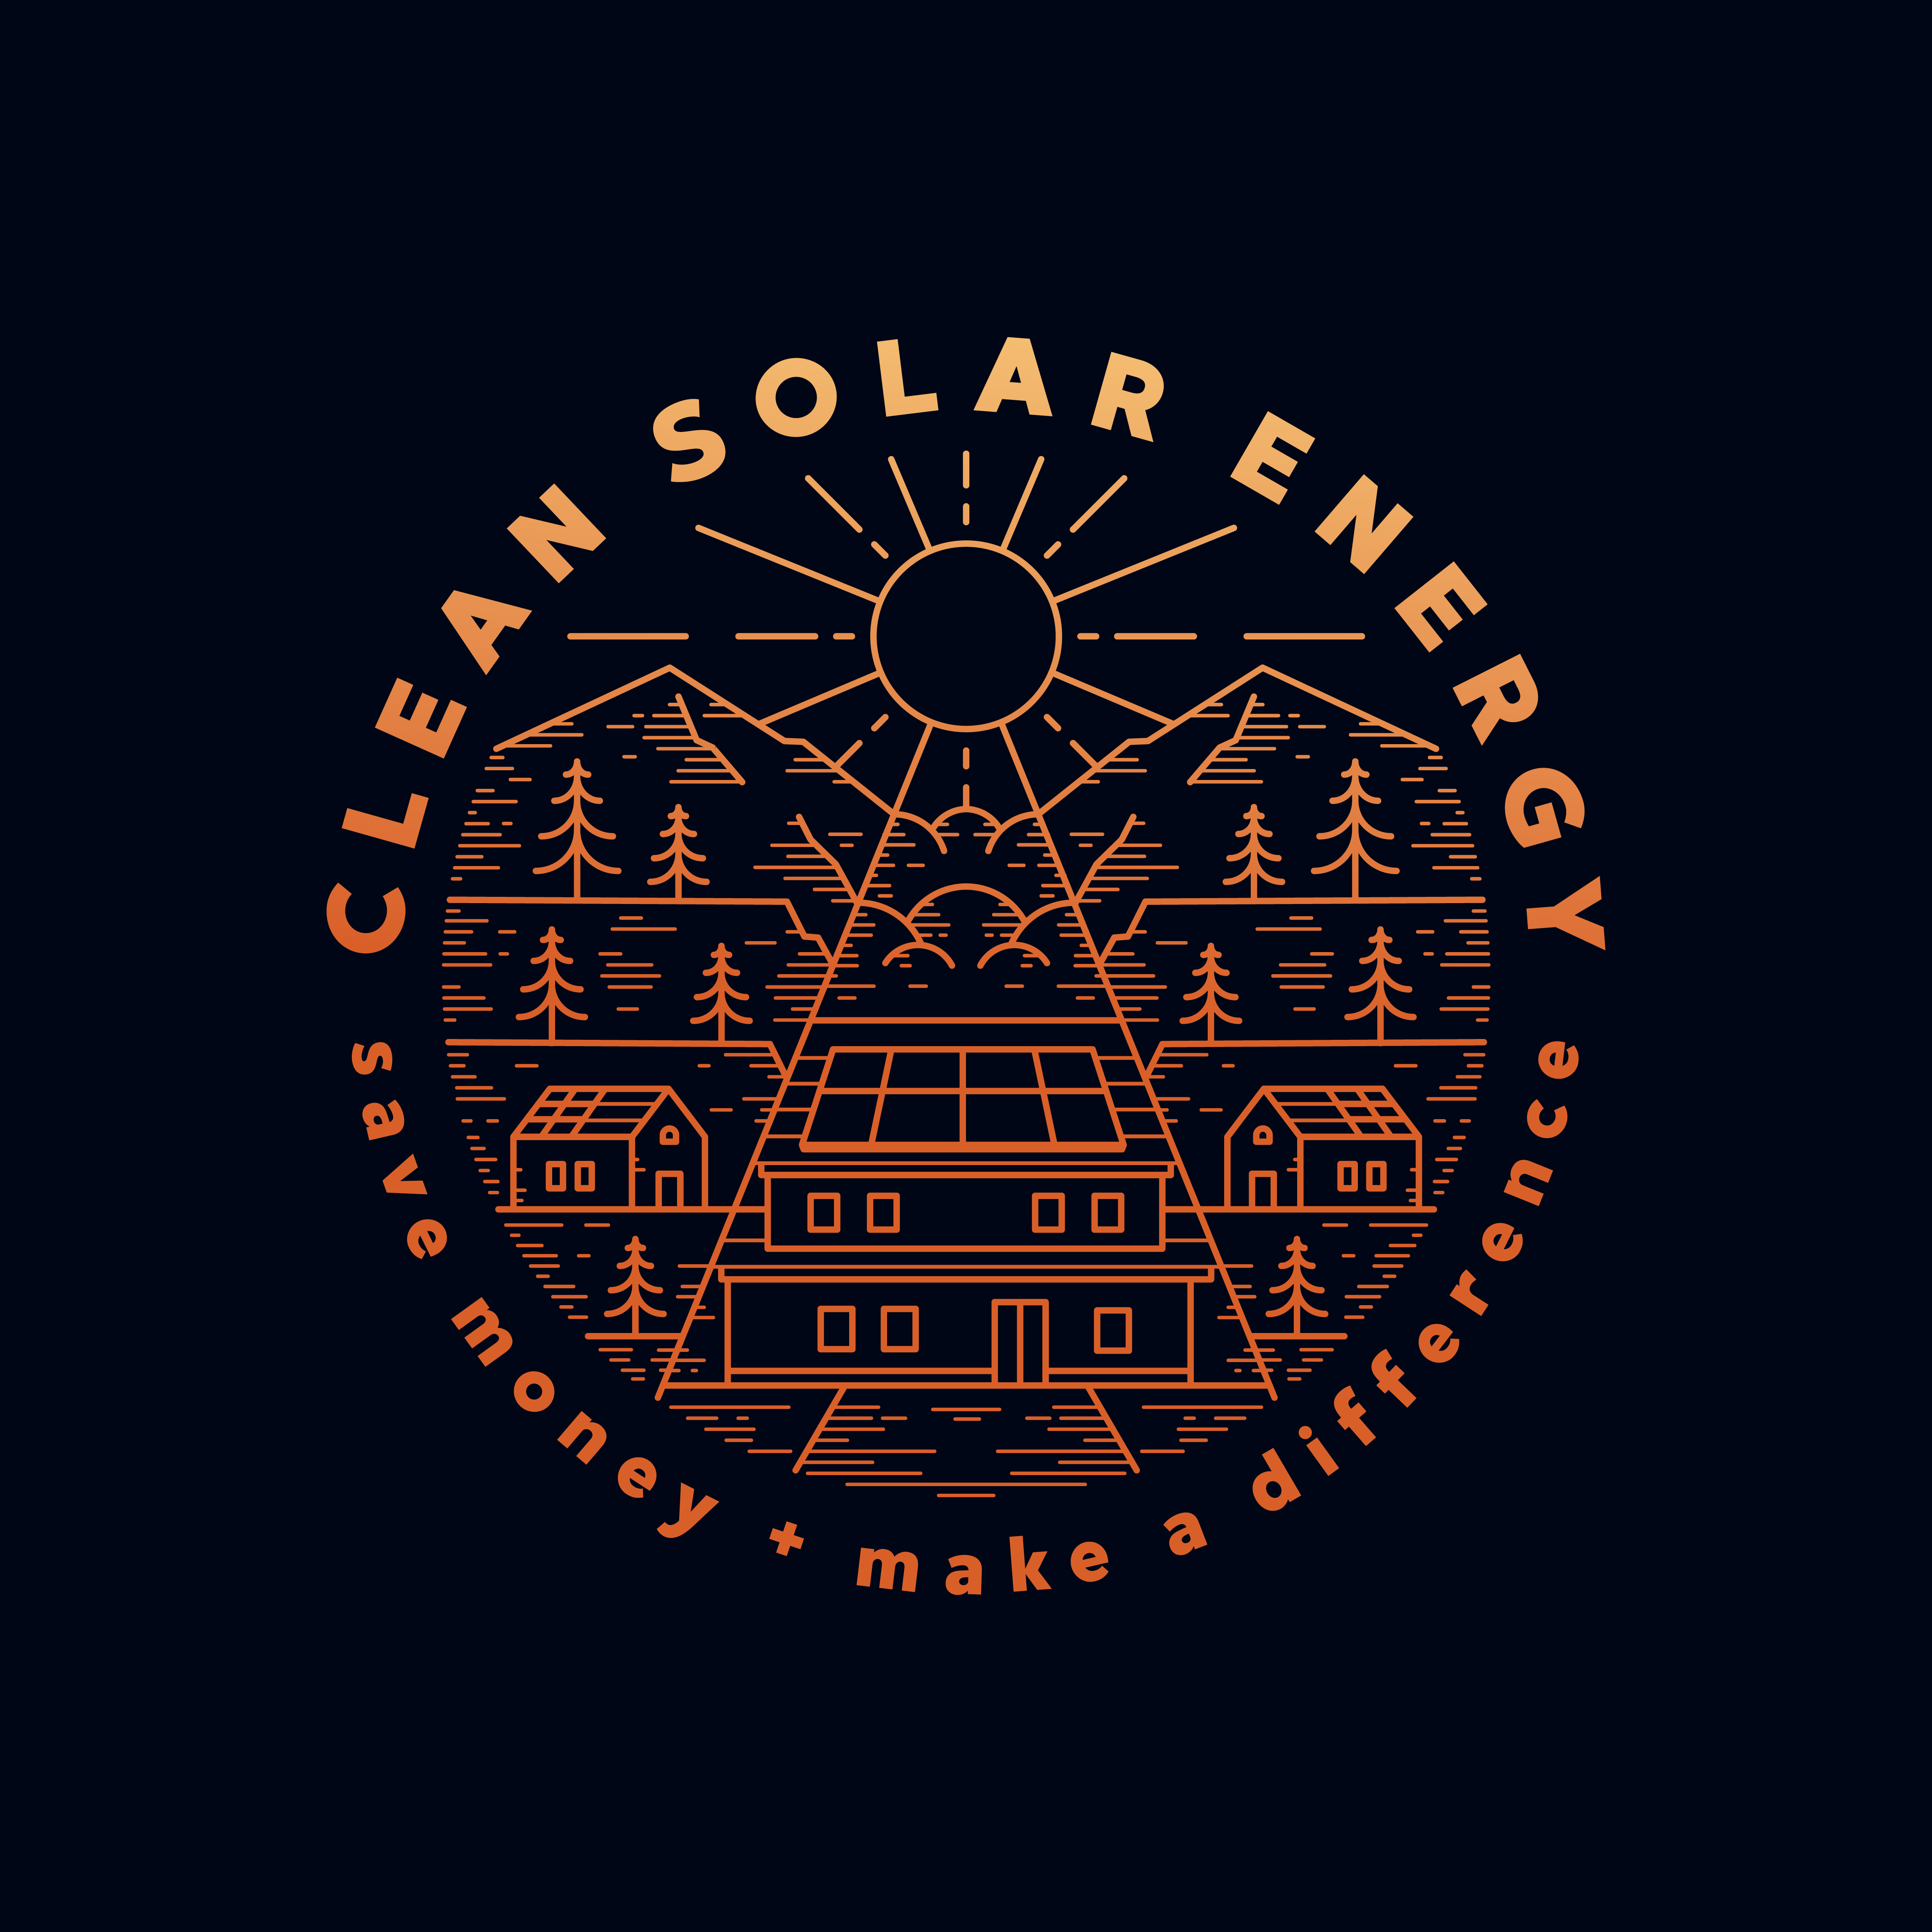 We're inspiring the solar movement. Design us a shirt we want to wear everyday.